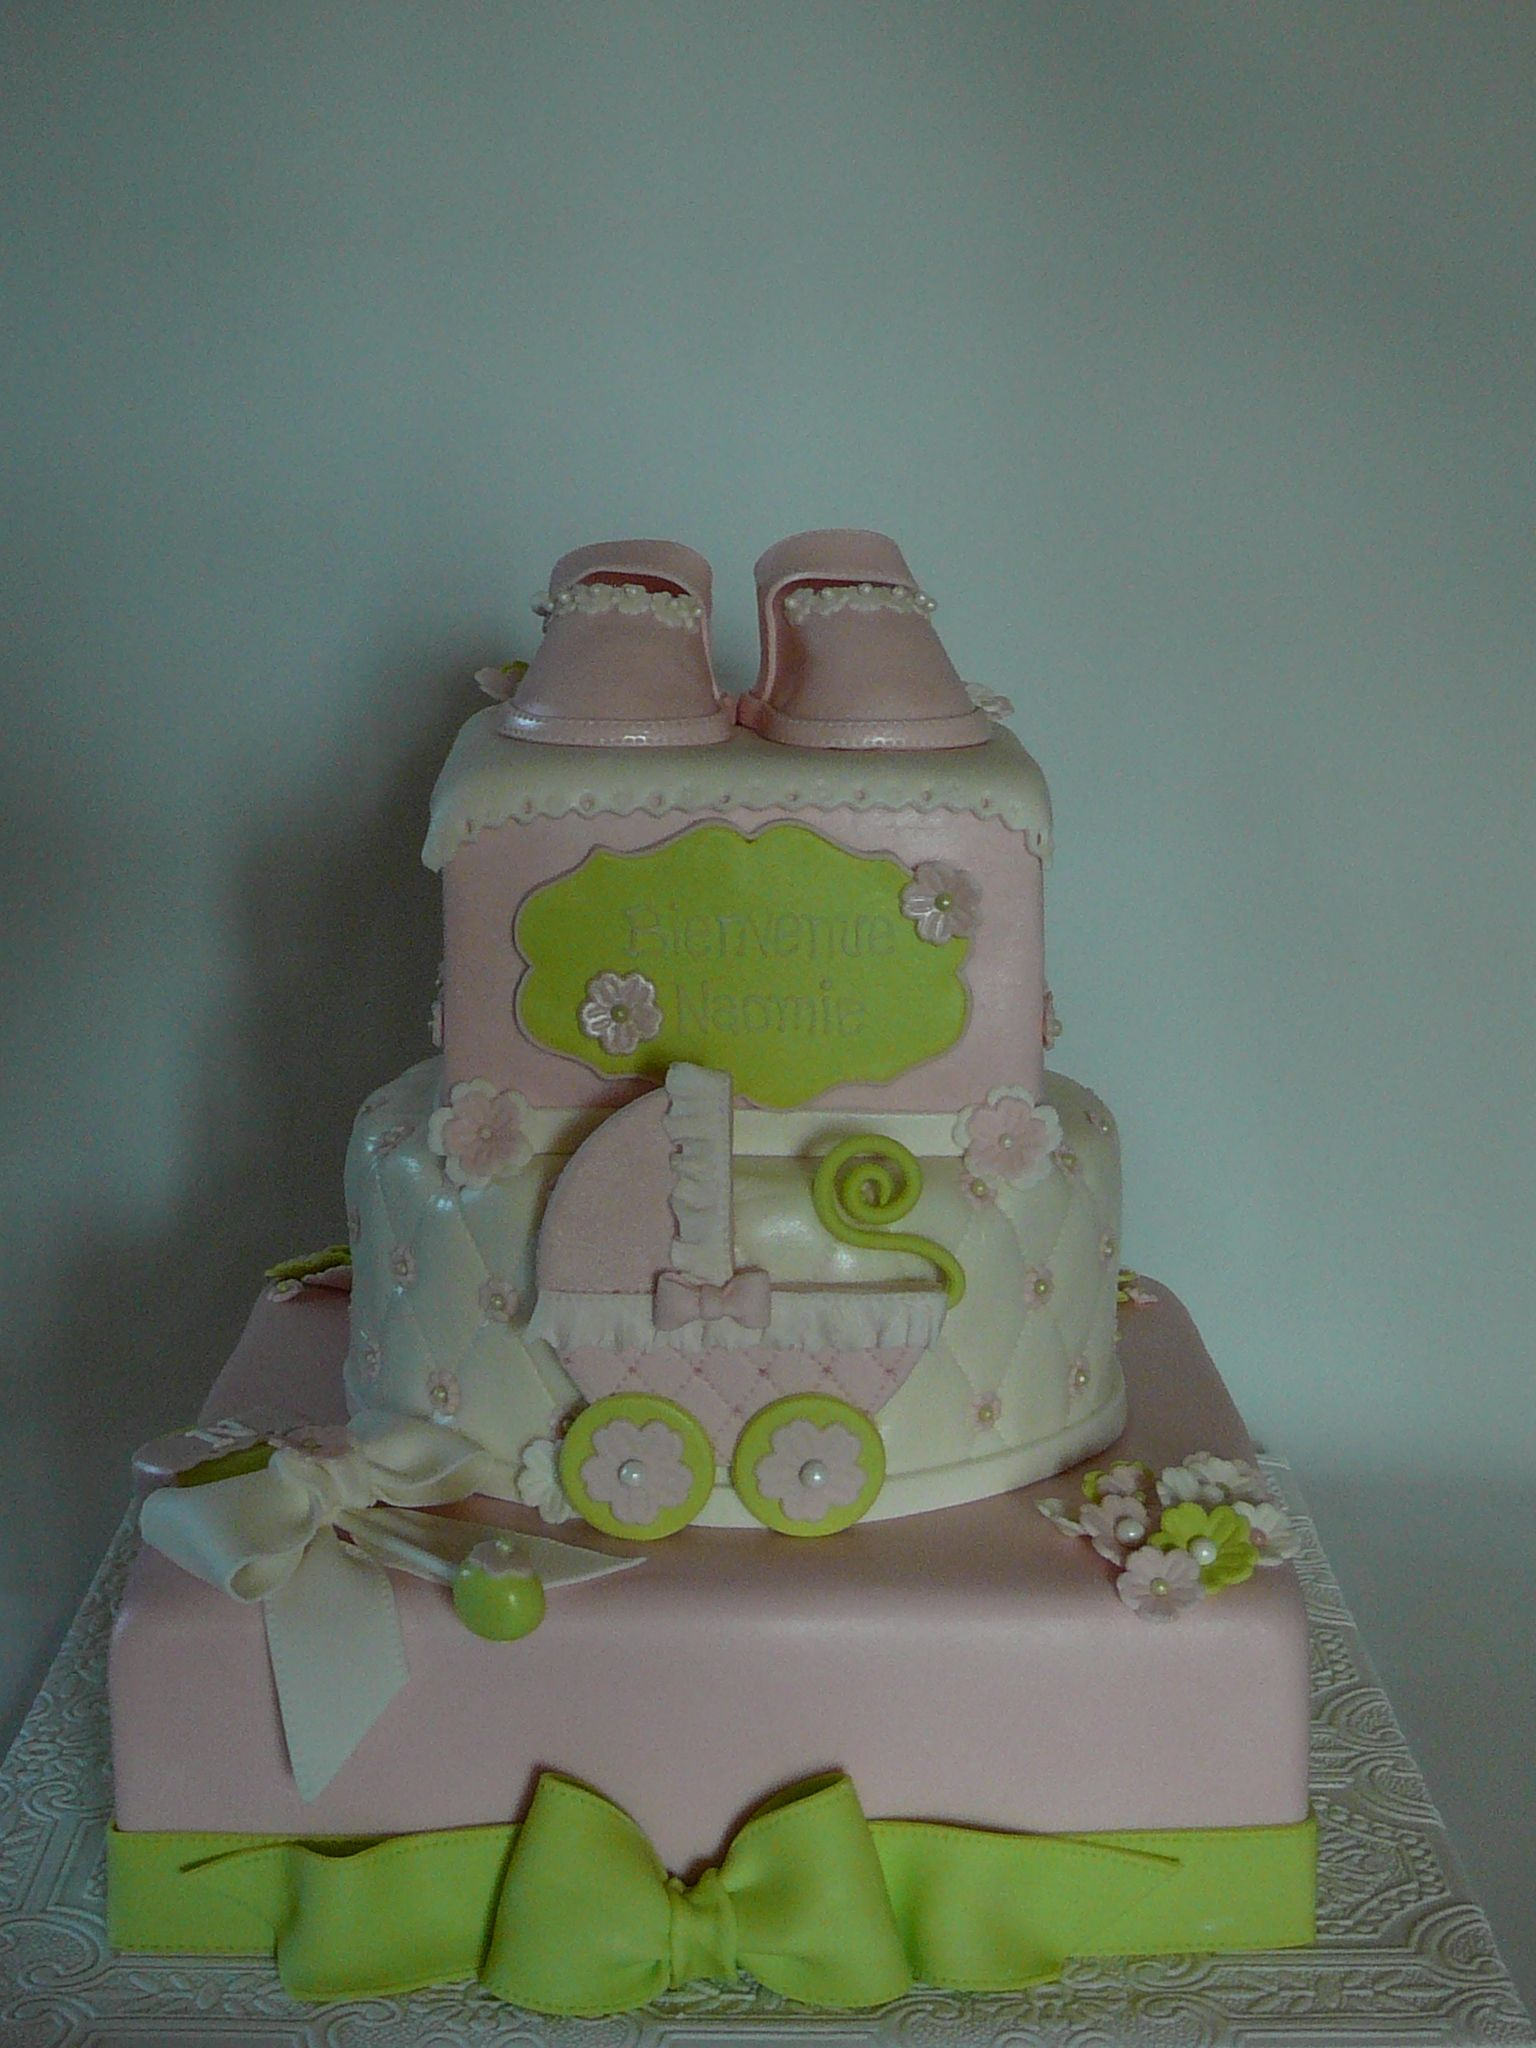 Baby carriage and girly shoes christening  - A baby carriage and girly shoes for a baby girl baptism. The baby carriage is hand made with fondant as all the decorations. This is a vanilla cake with buttercream icing covered with fondant.